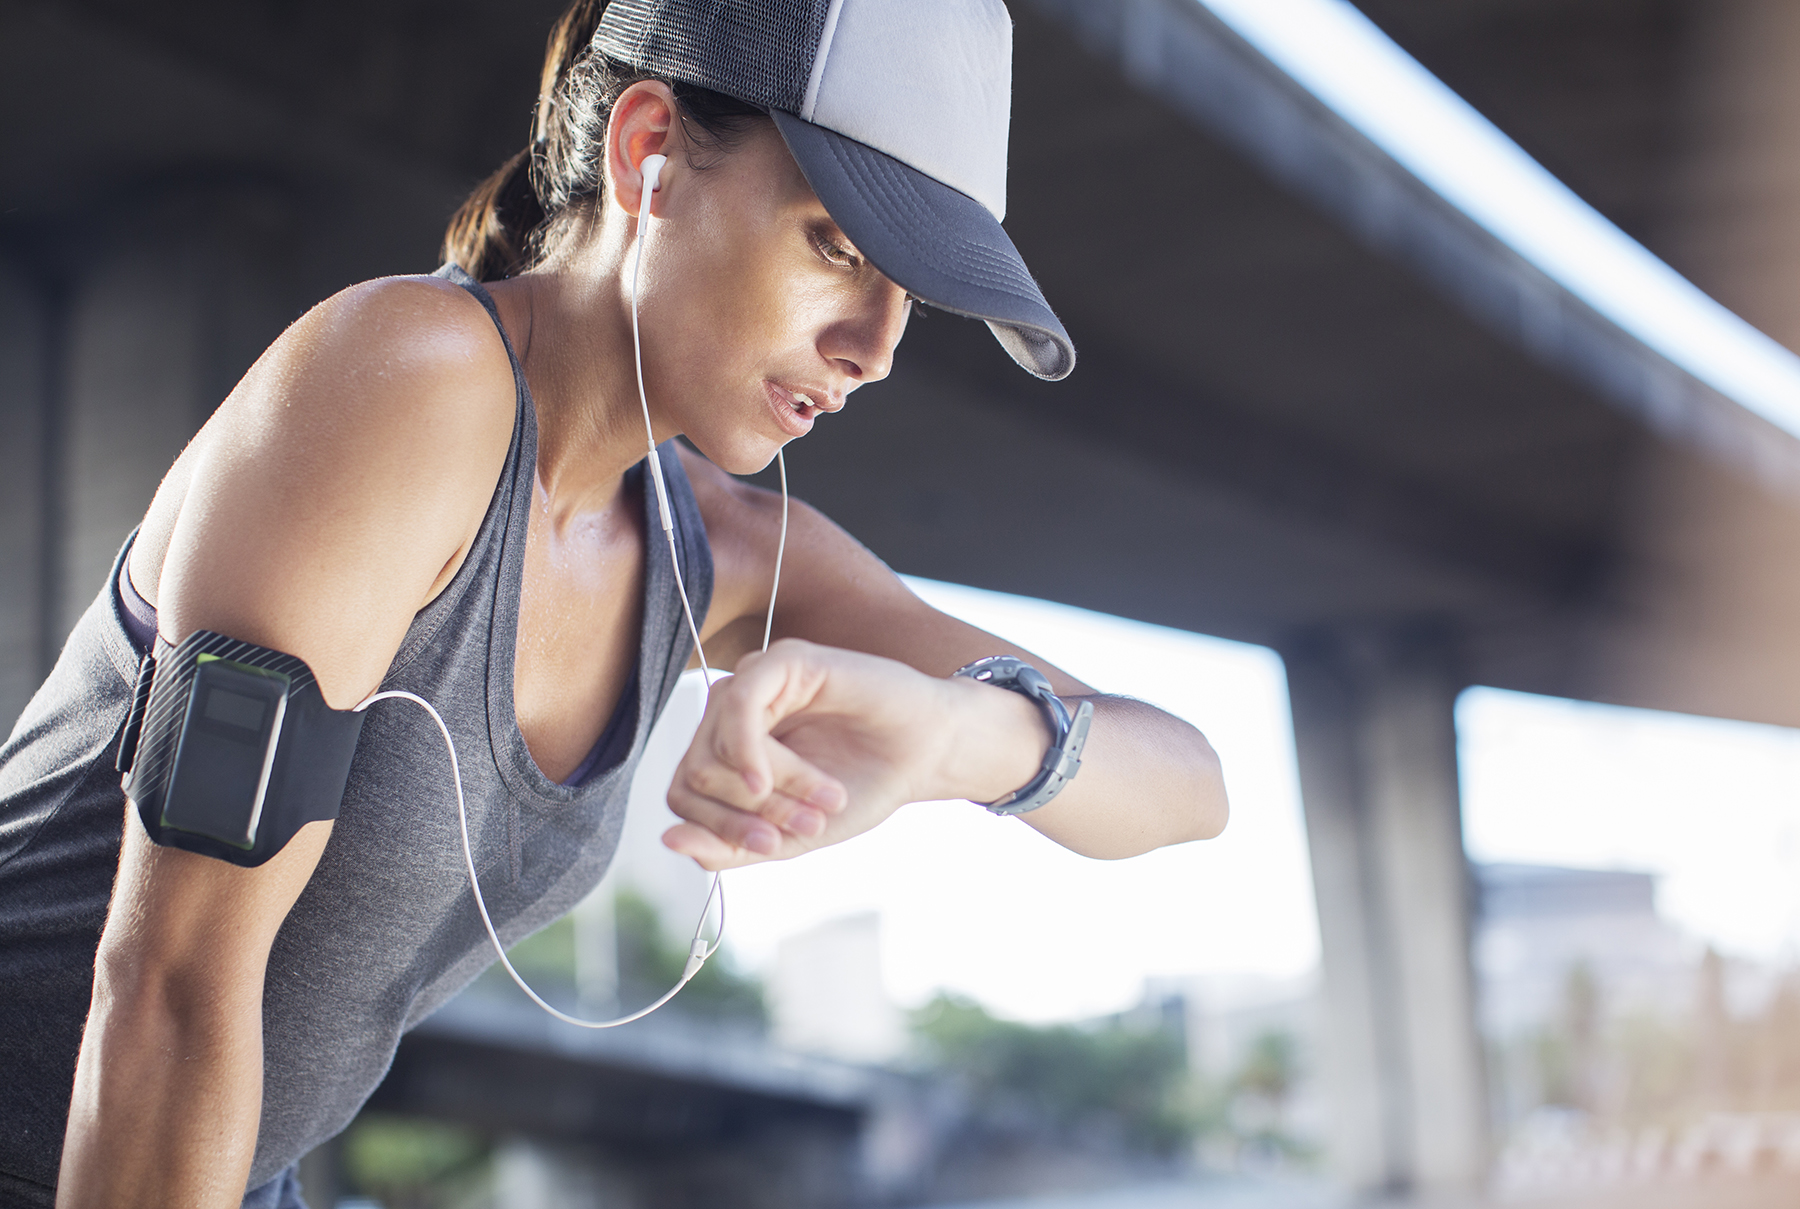 5 Ways to Make Your Workout More Productive